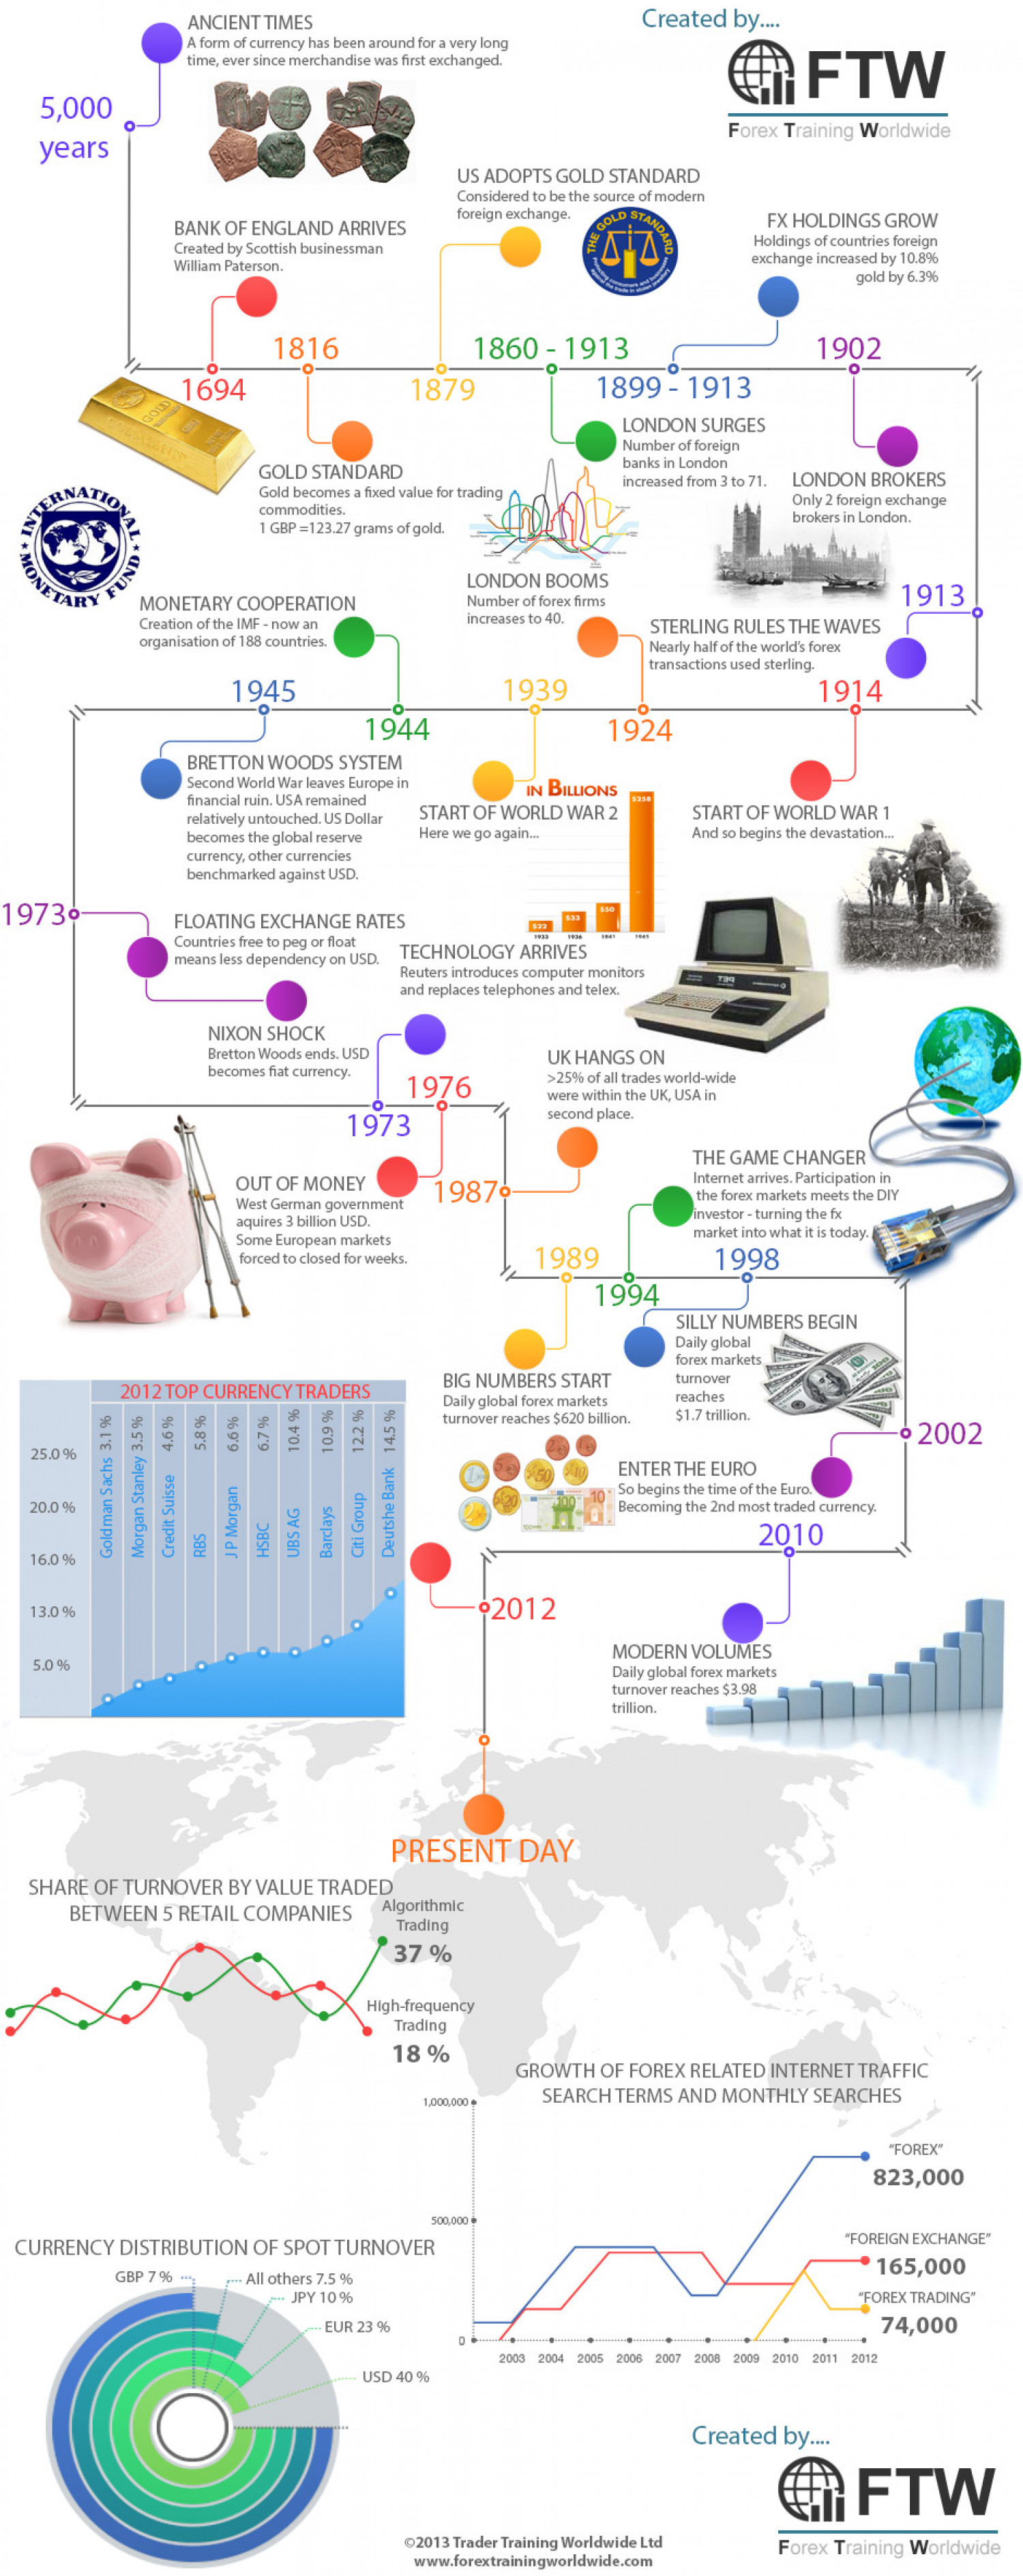 Top forex traders history